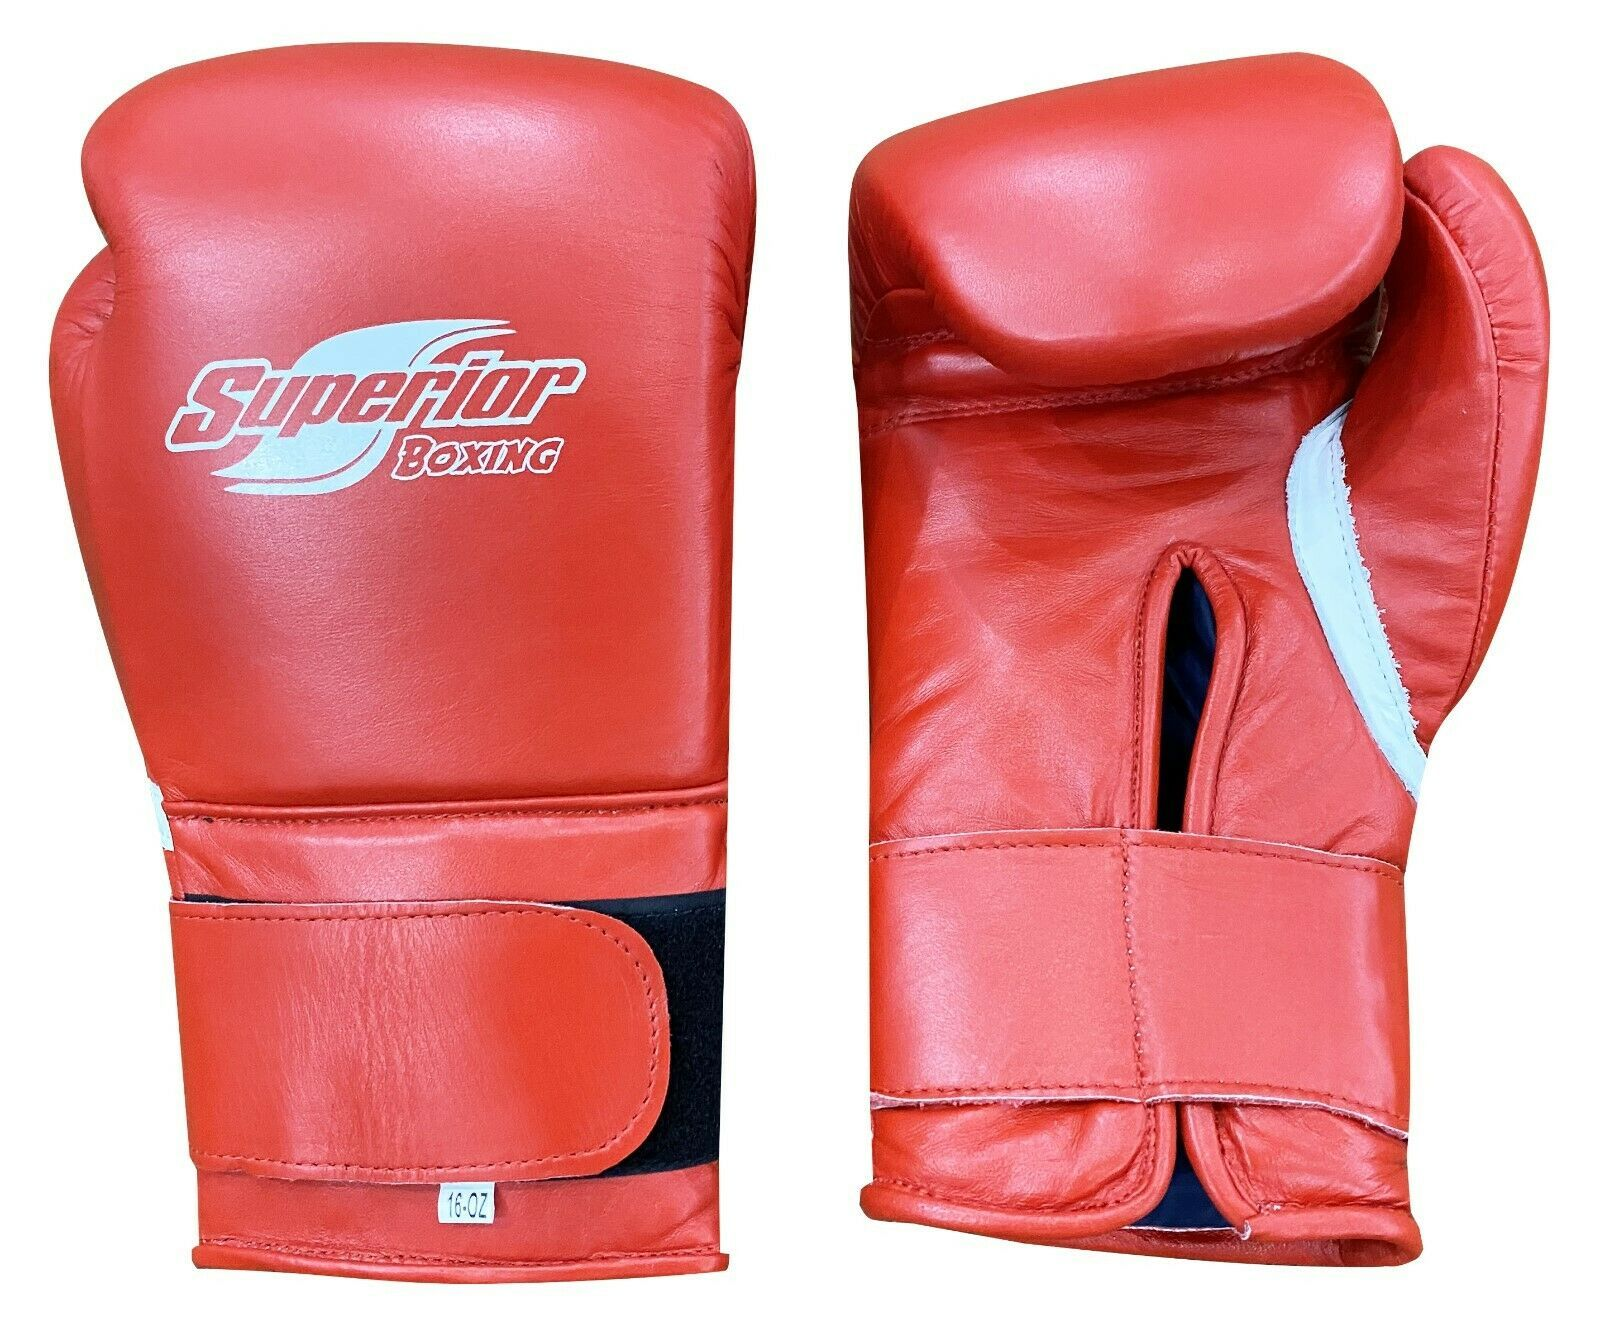 SUPERIOR Boxing Gloves Punching Training Sparring MMA Kickboxing Bag Muay Thai